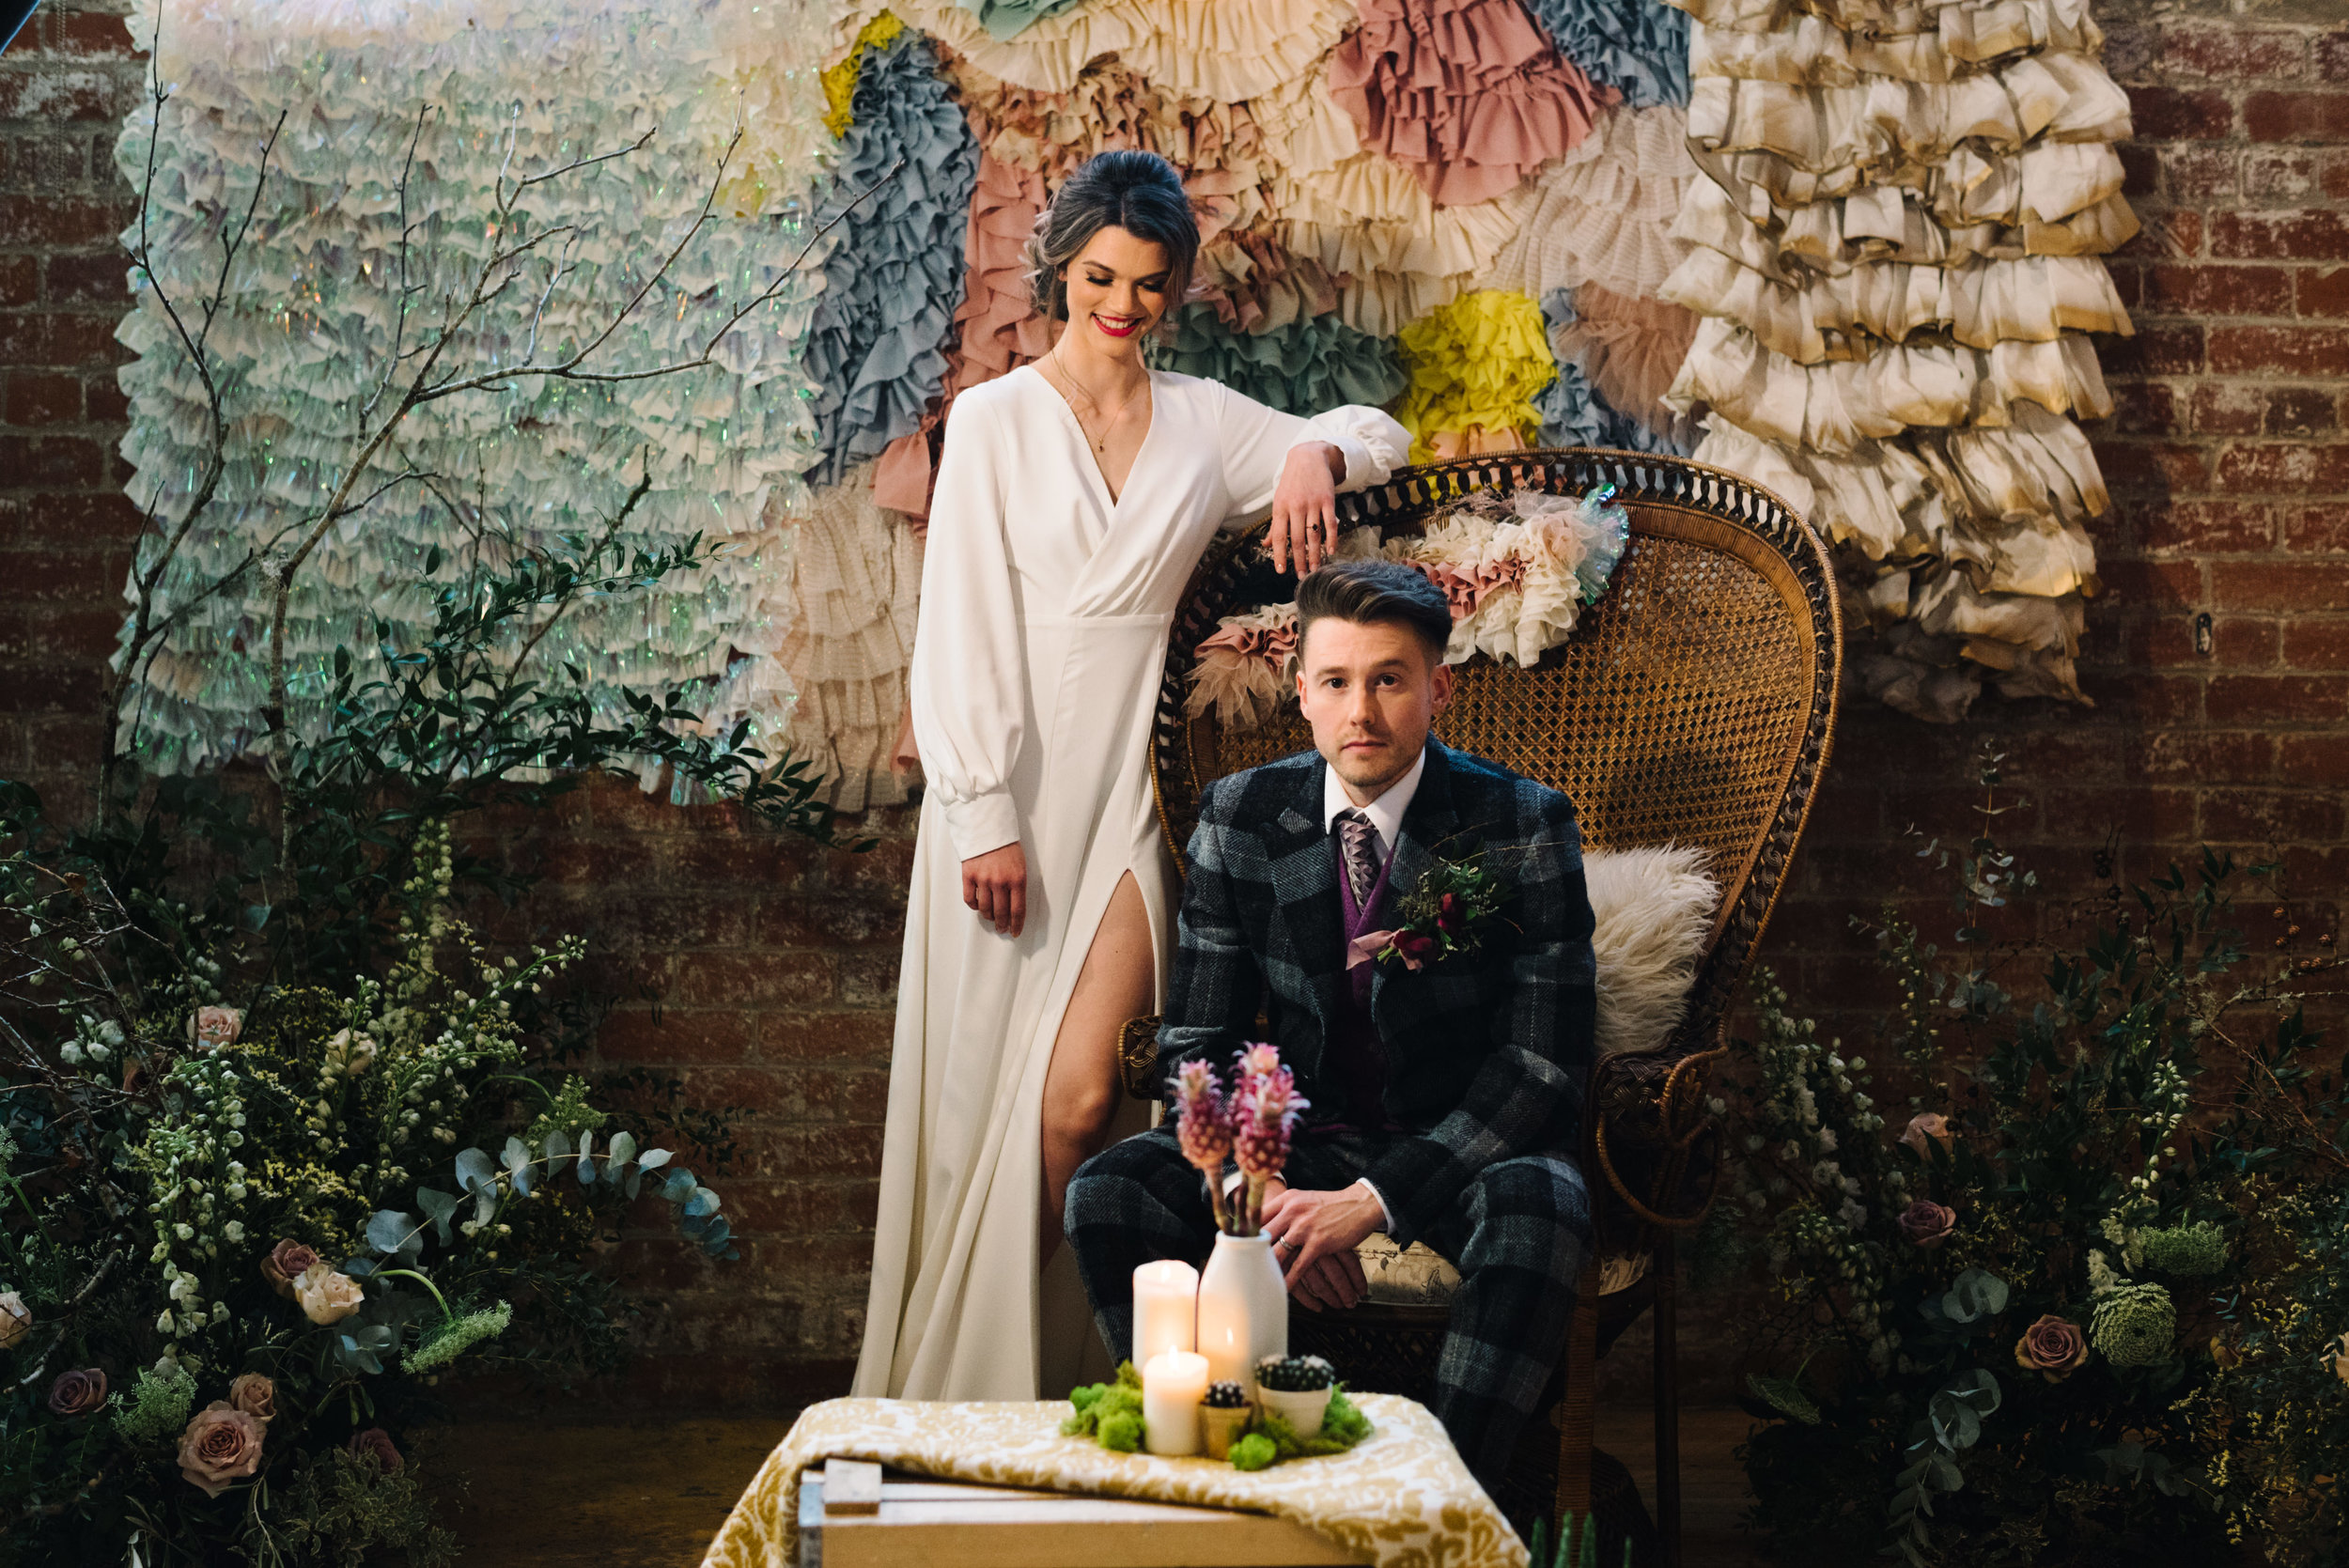 Modern Wedding Inspiration Shoot in Glasgow Brewery With a Frill Installation, Candy Floss and Neon 00013.jpg